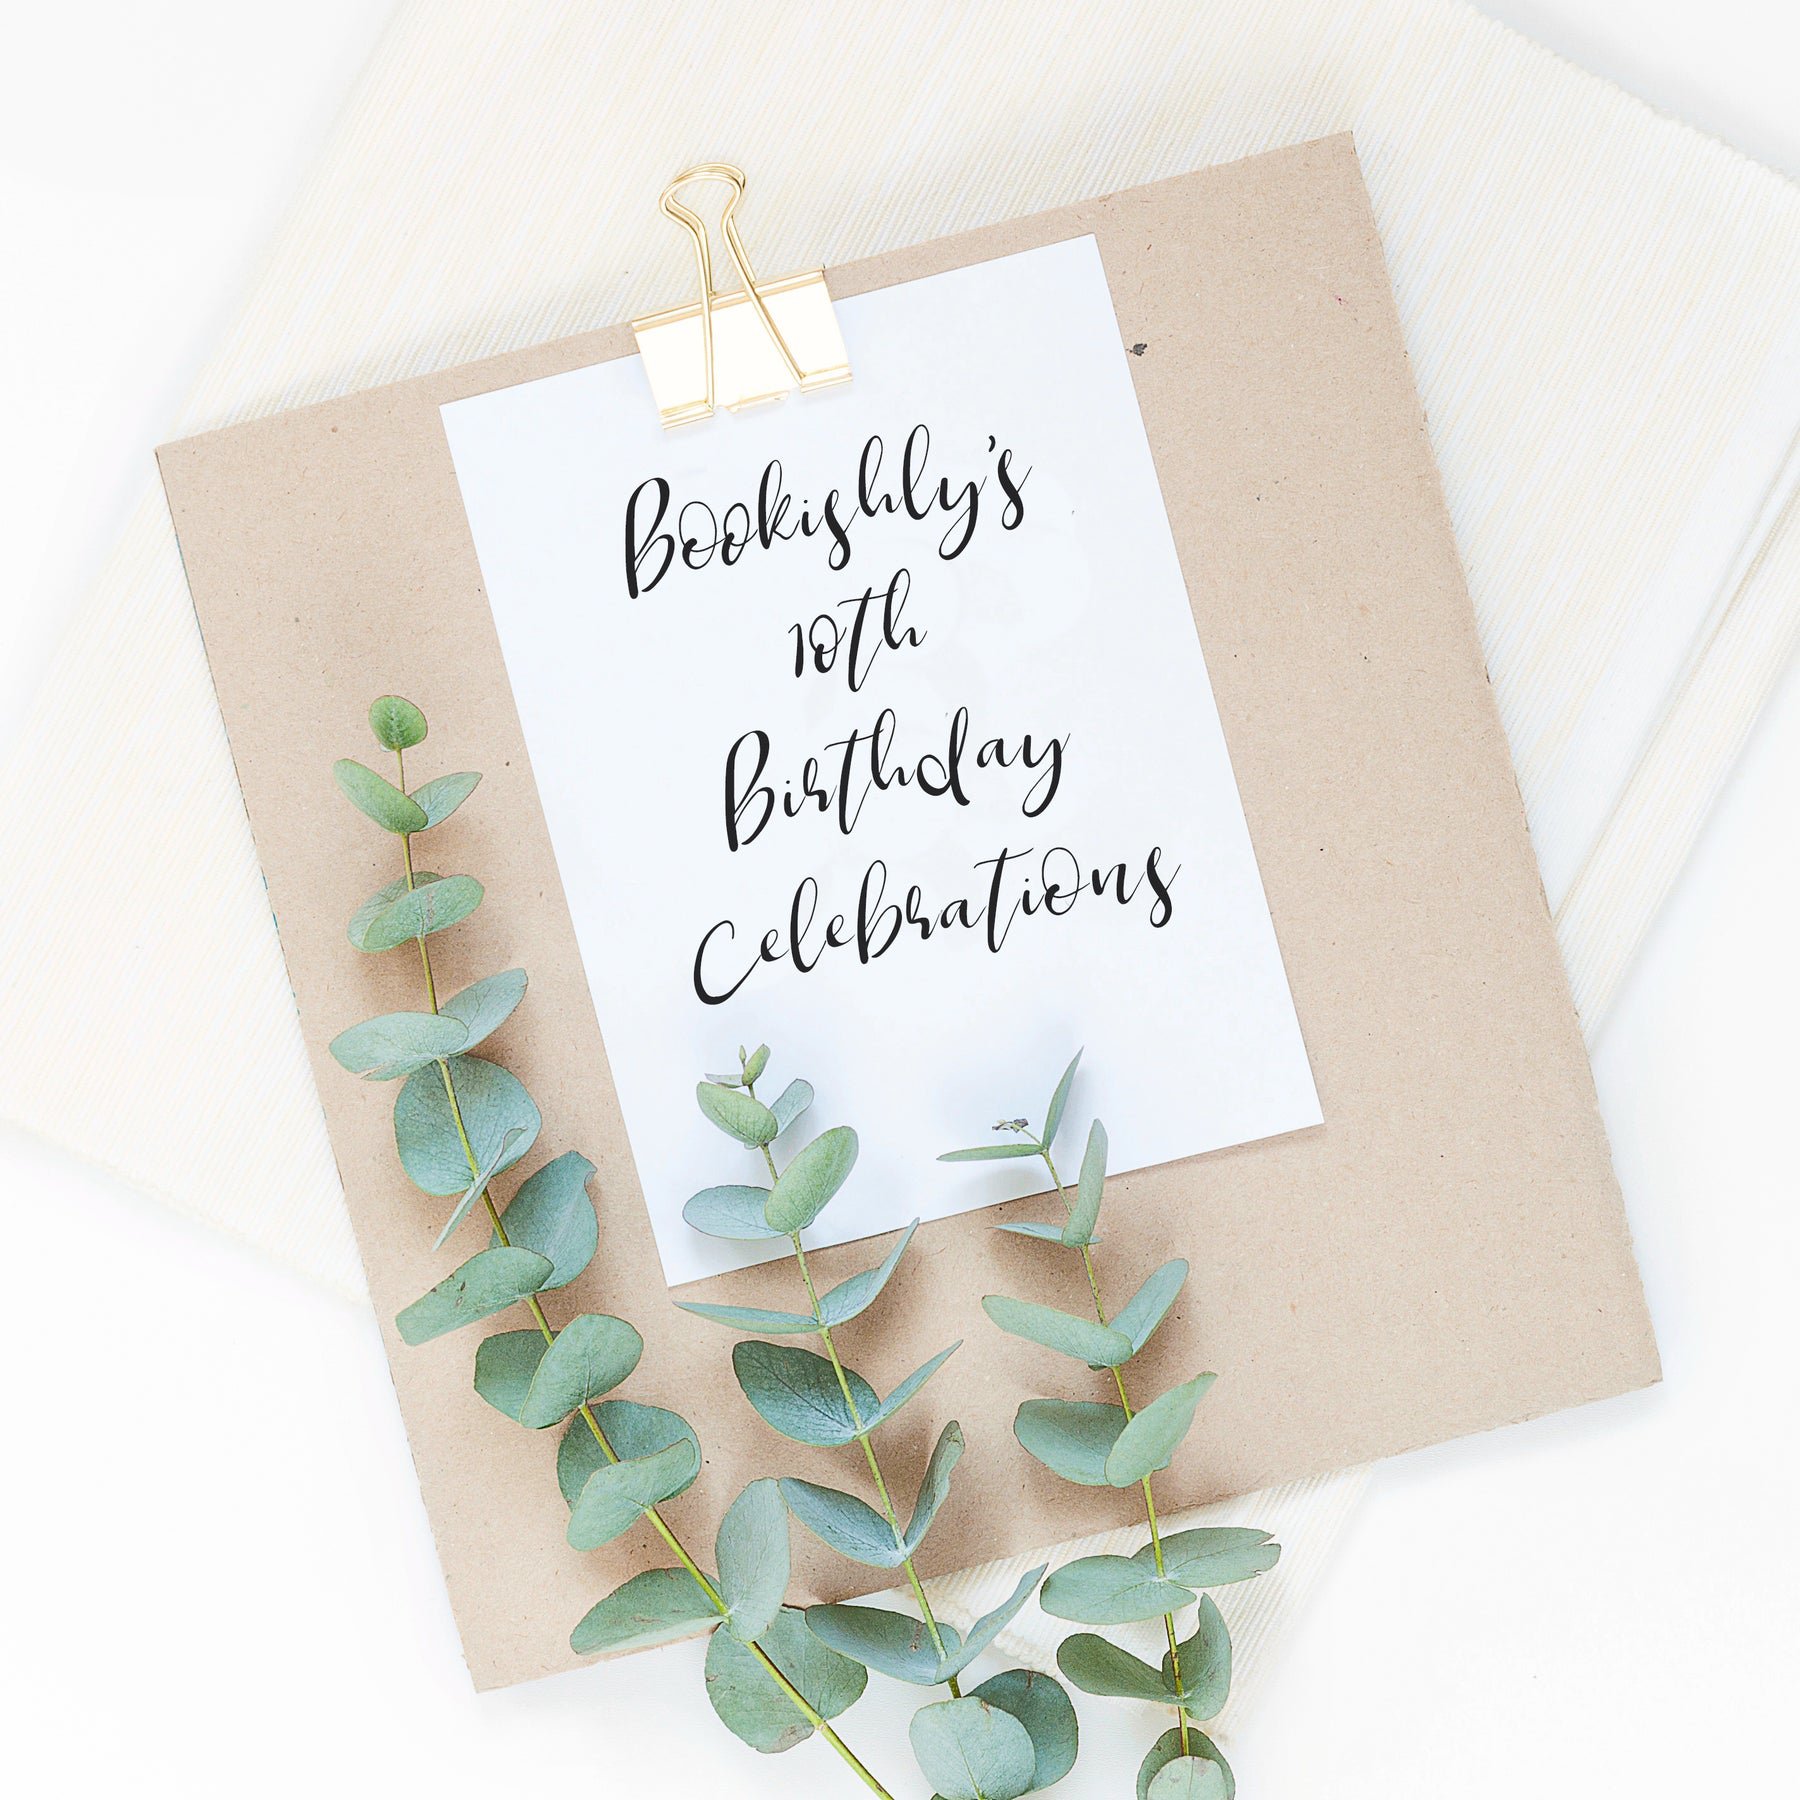 Bookishly's Birthday Celebration - We're Turning Ten!